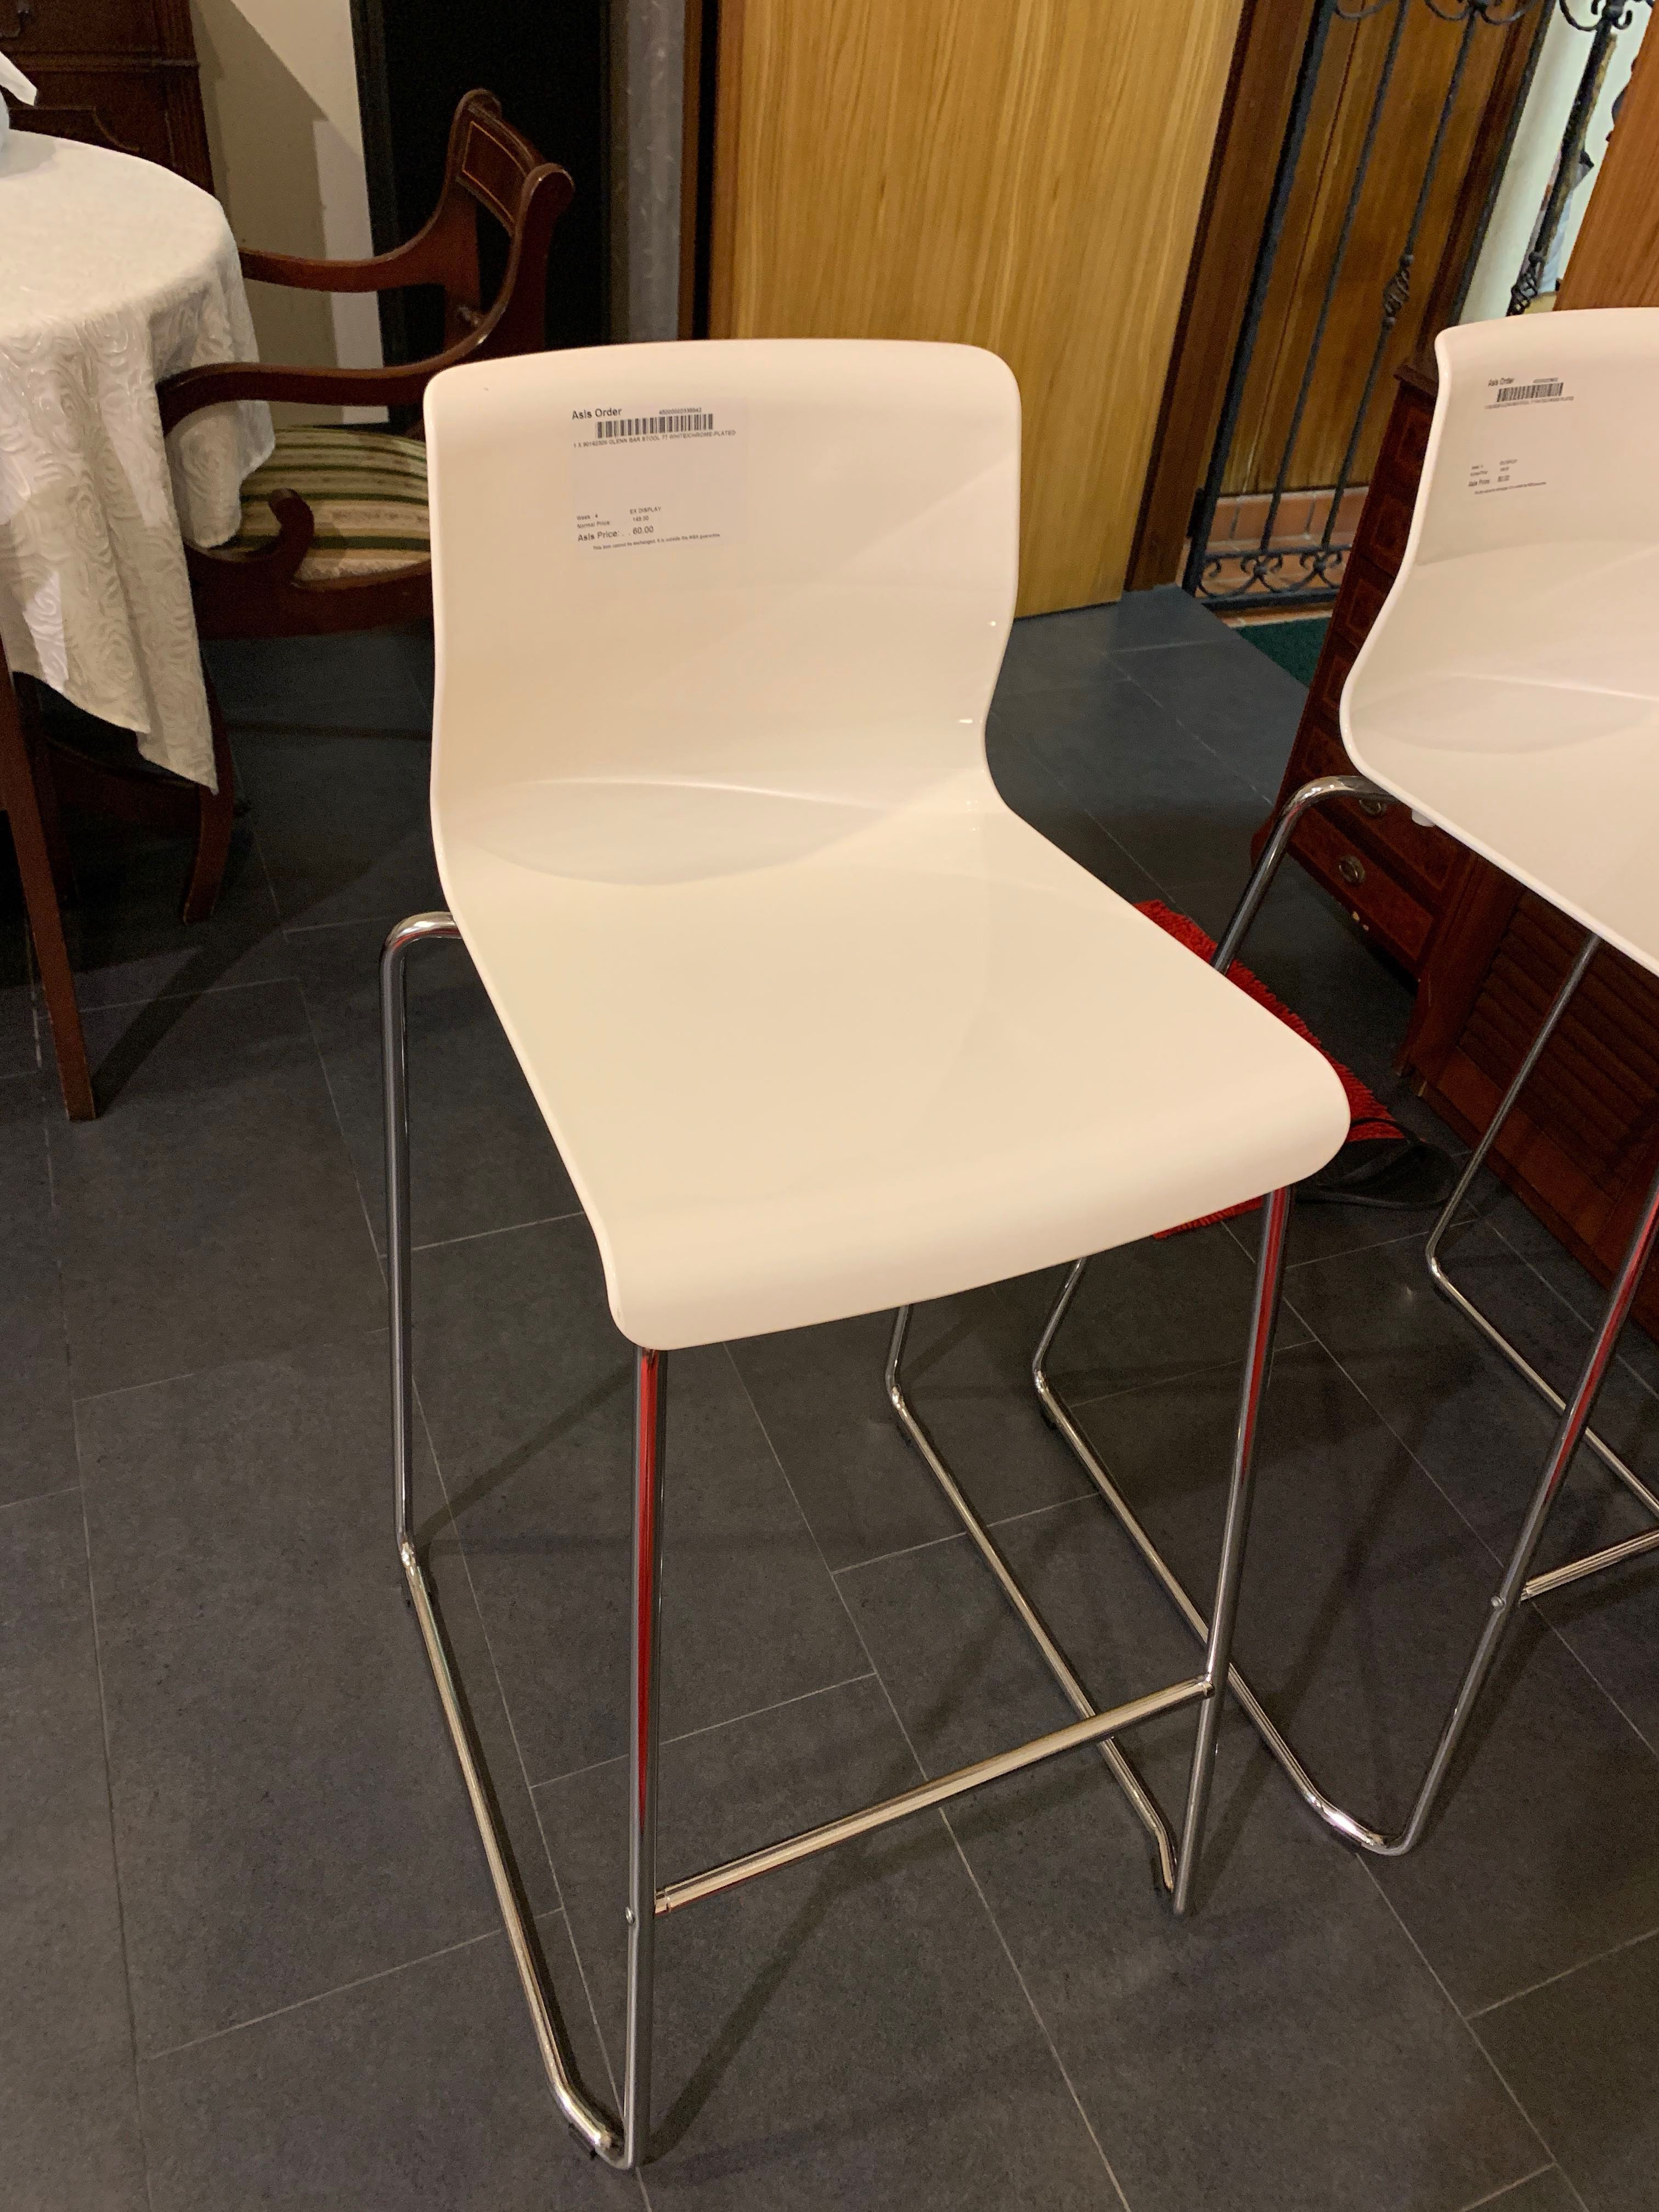 Wondrous Ikea Glenn Bar Stool White Chrome Plated Furniture Tables Gmtry Best Dining Table And Chair Ideas Images Gmtryco